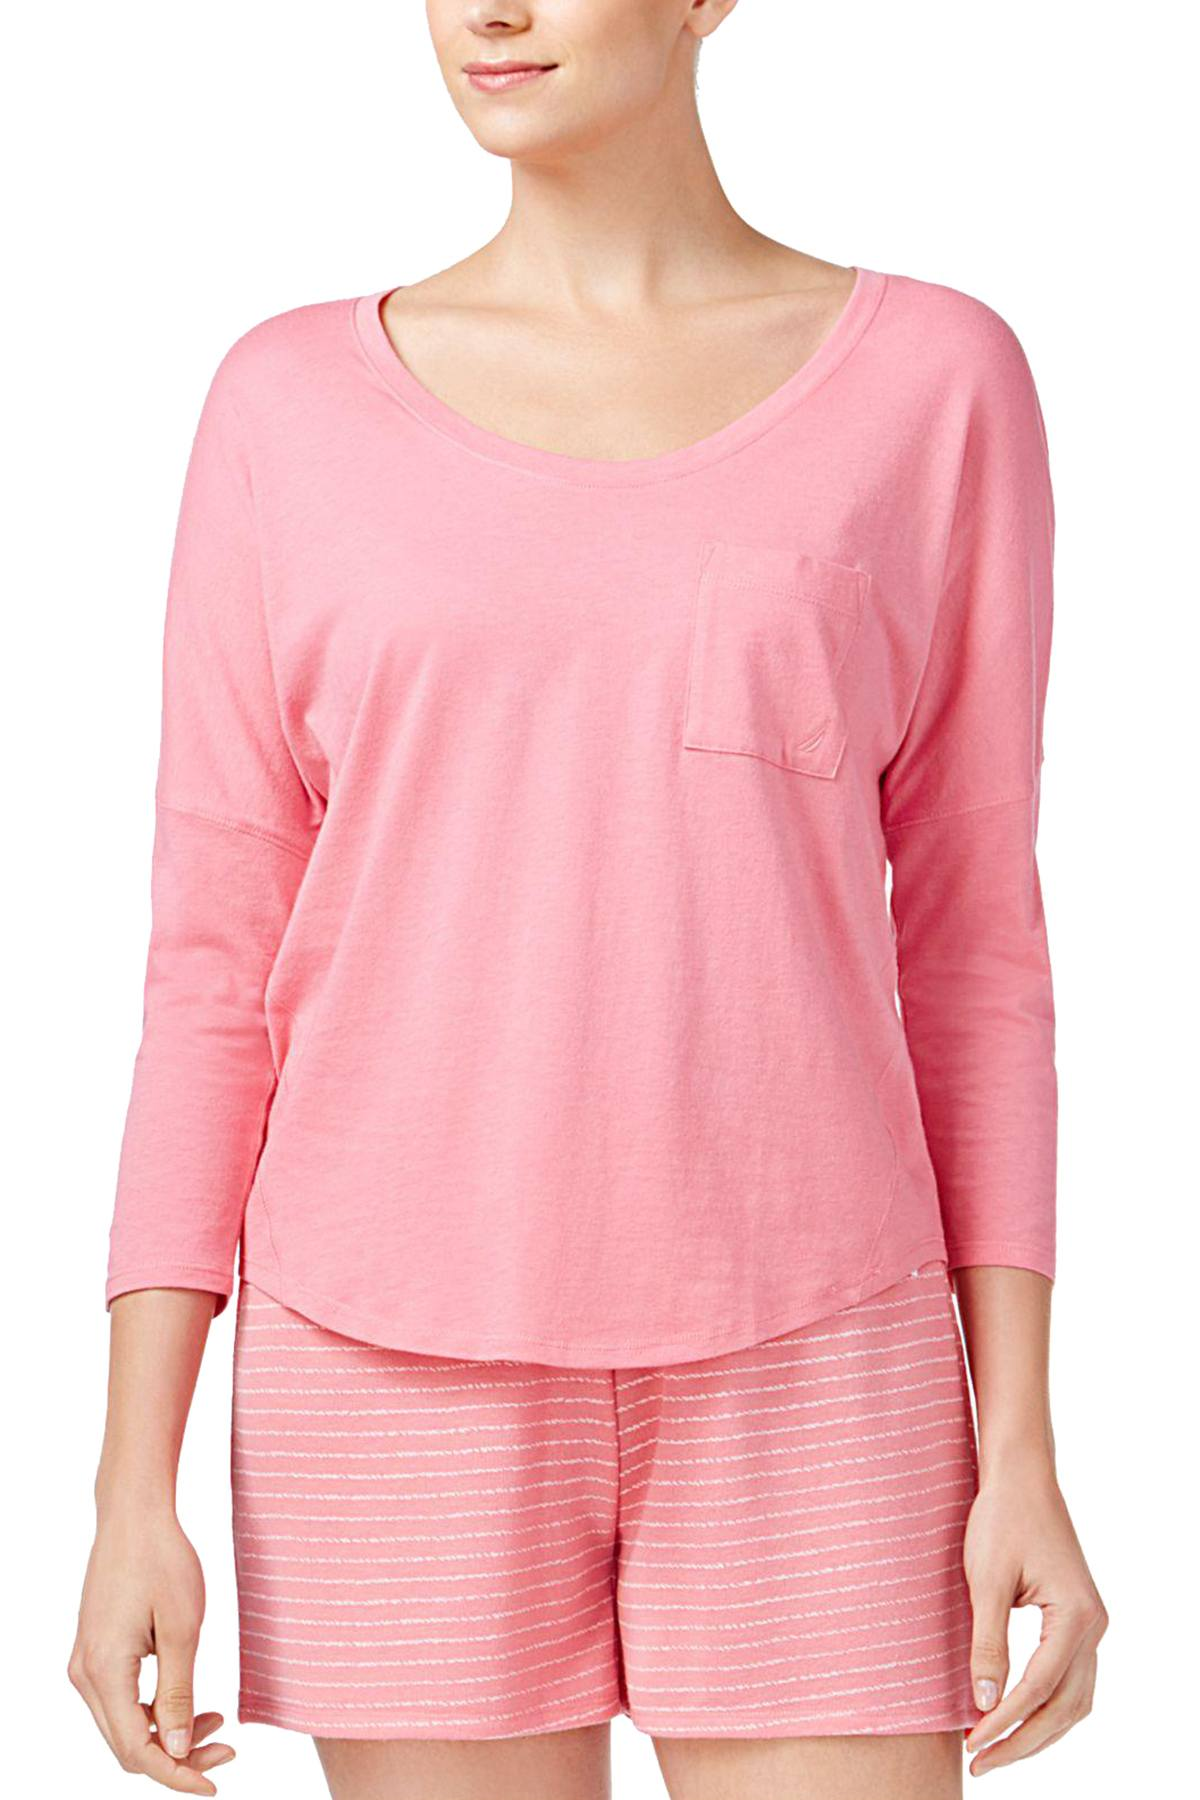 Nautica Pink Dolman Pocket Lounge Top